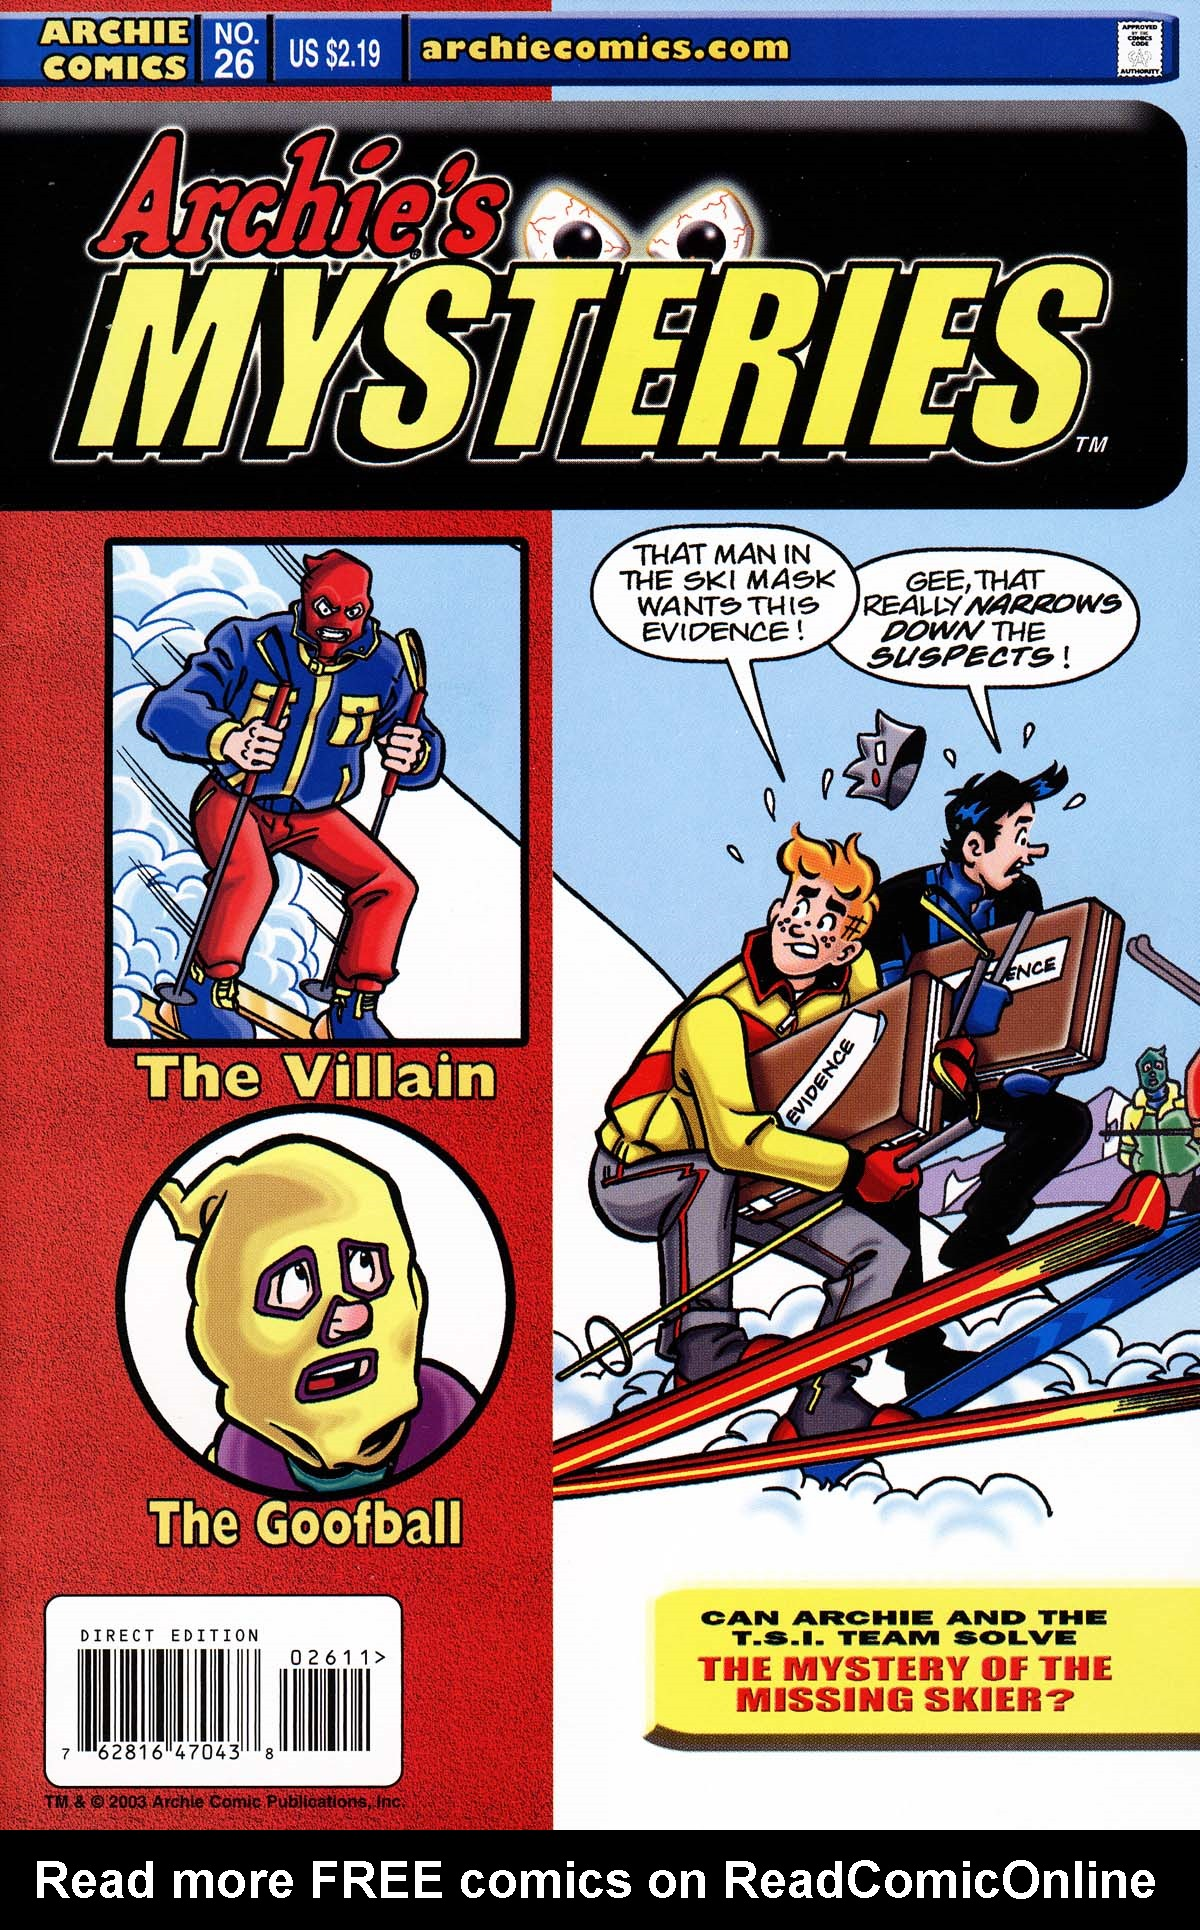 Read online Archie's Weird Mysteries comic -  Issue #26 - 1